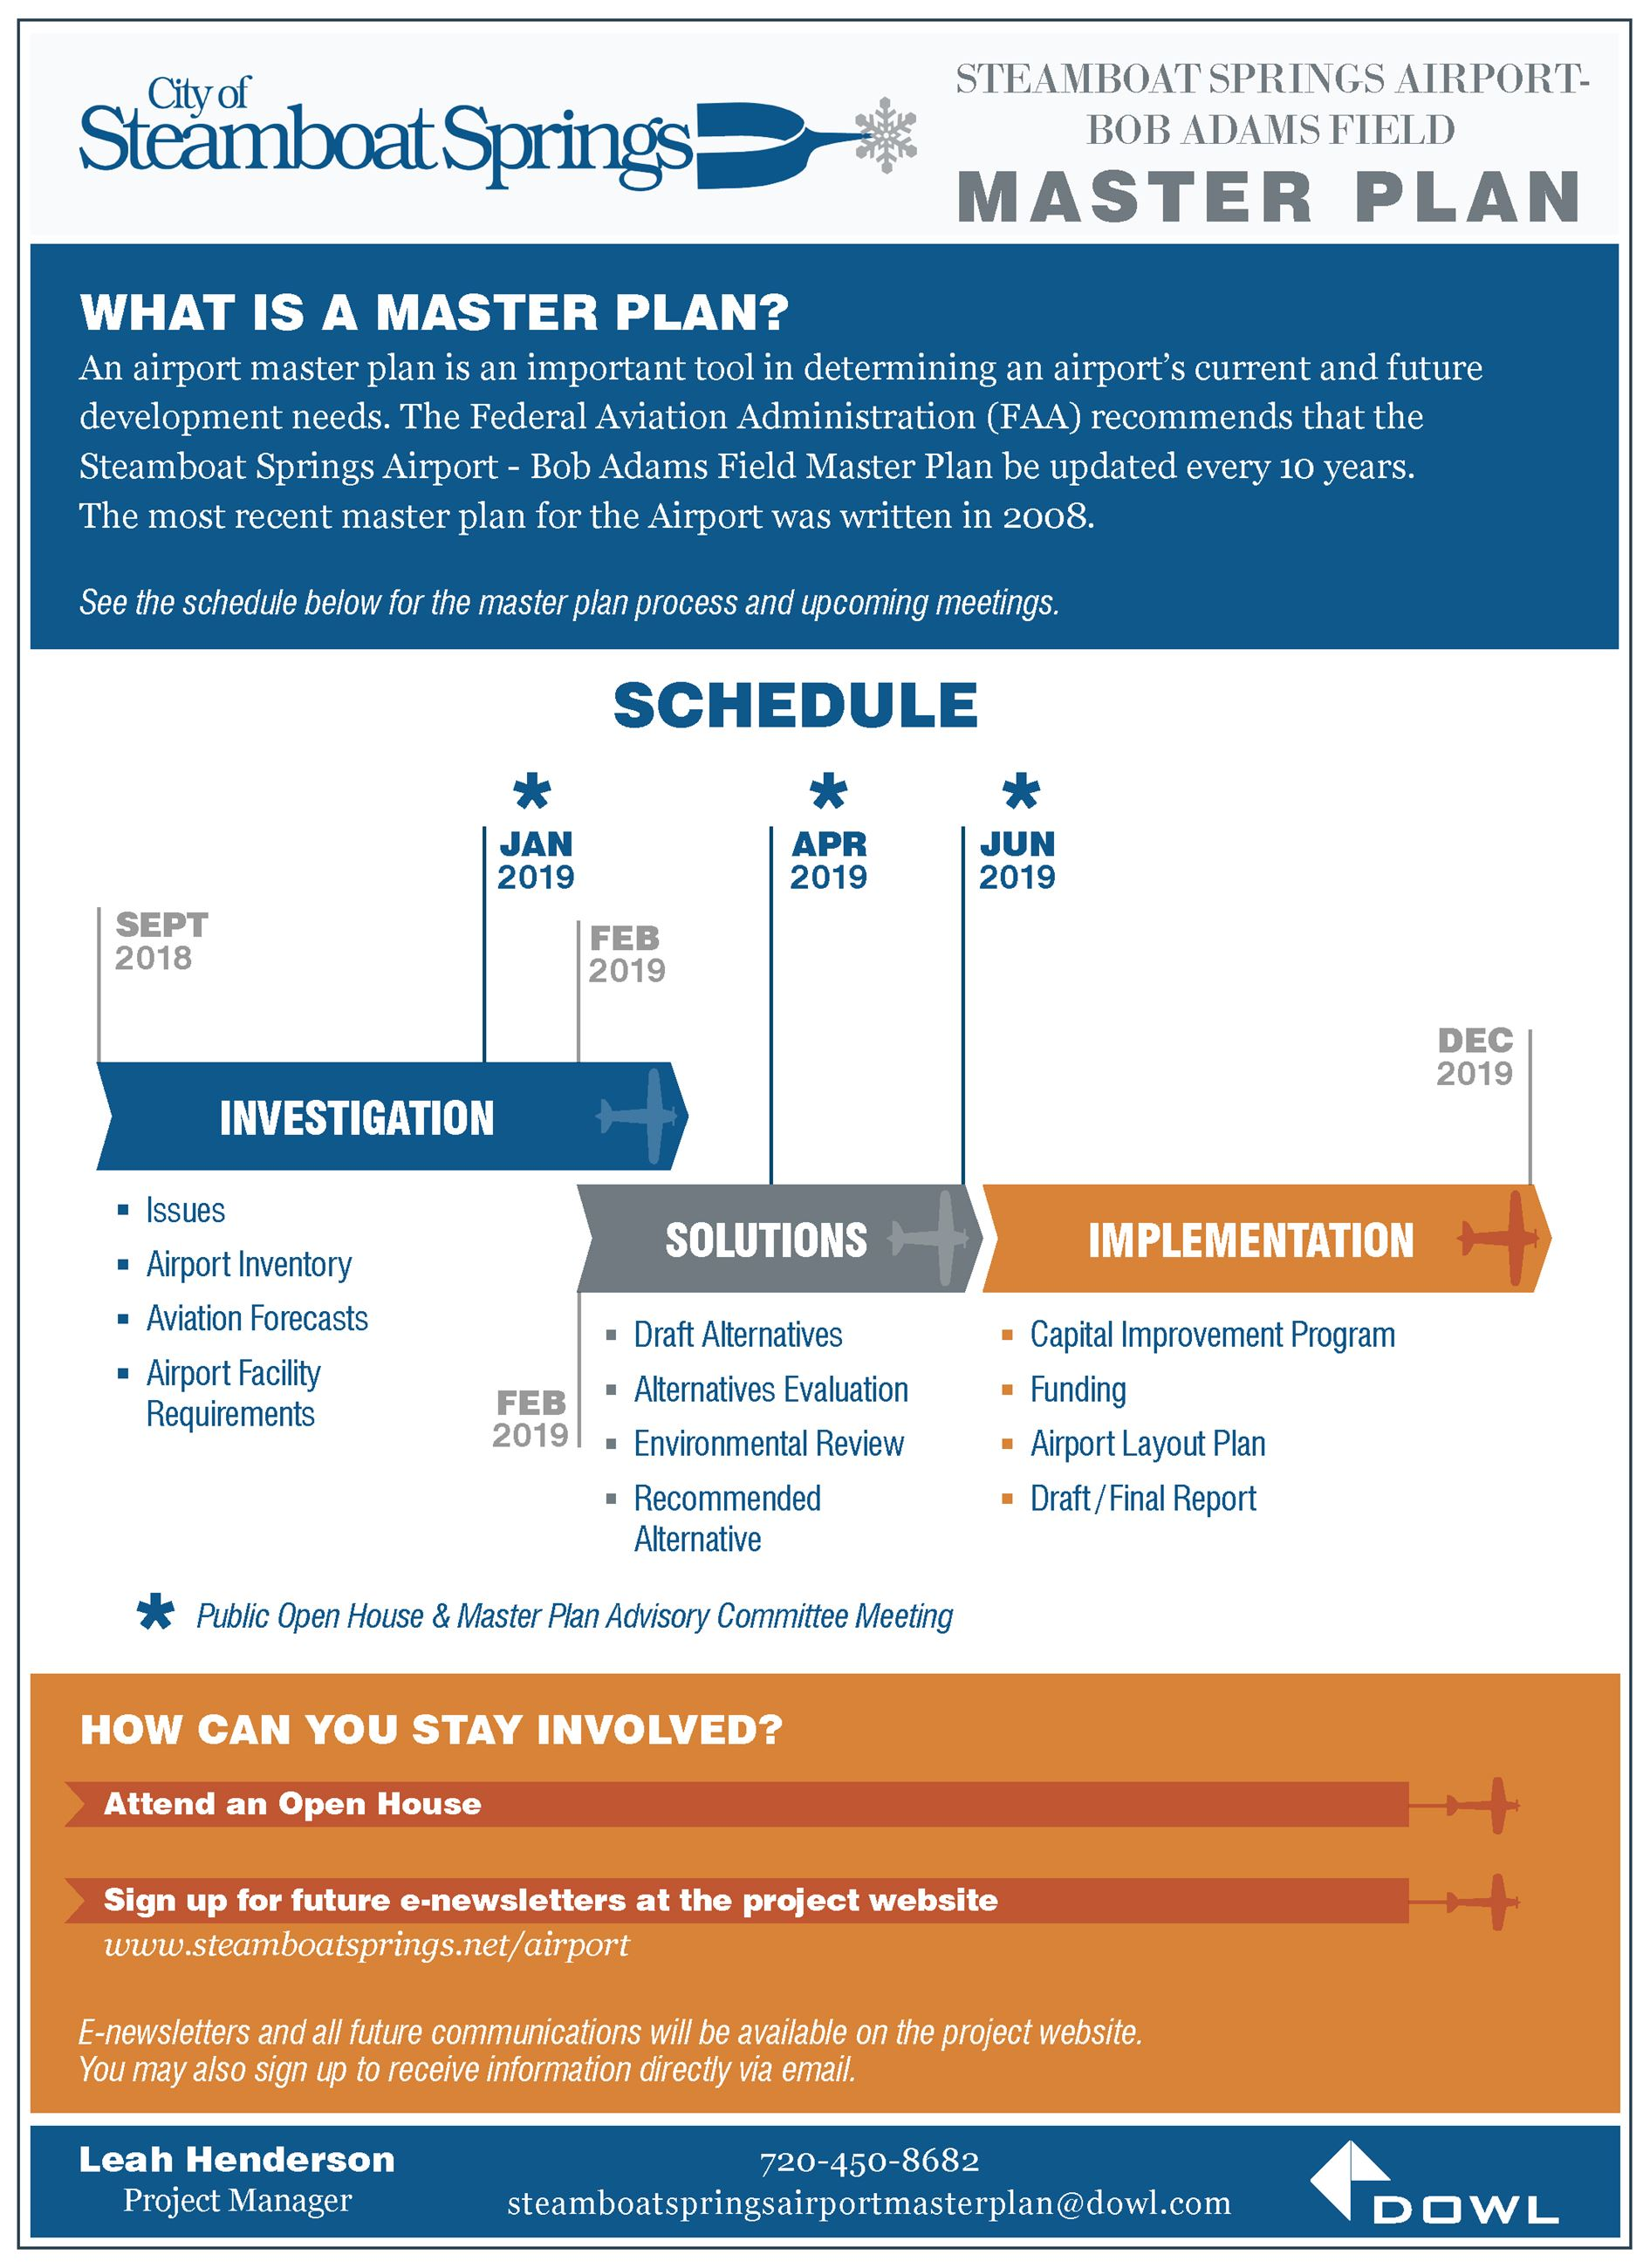 Steamboat Springs Airport Master Plan Fact Sheet